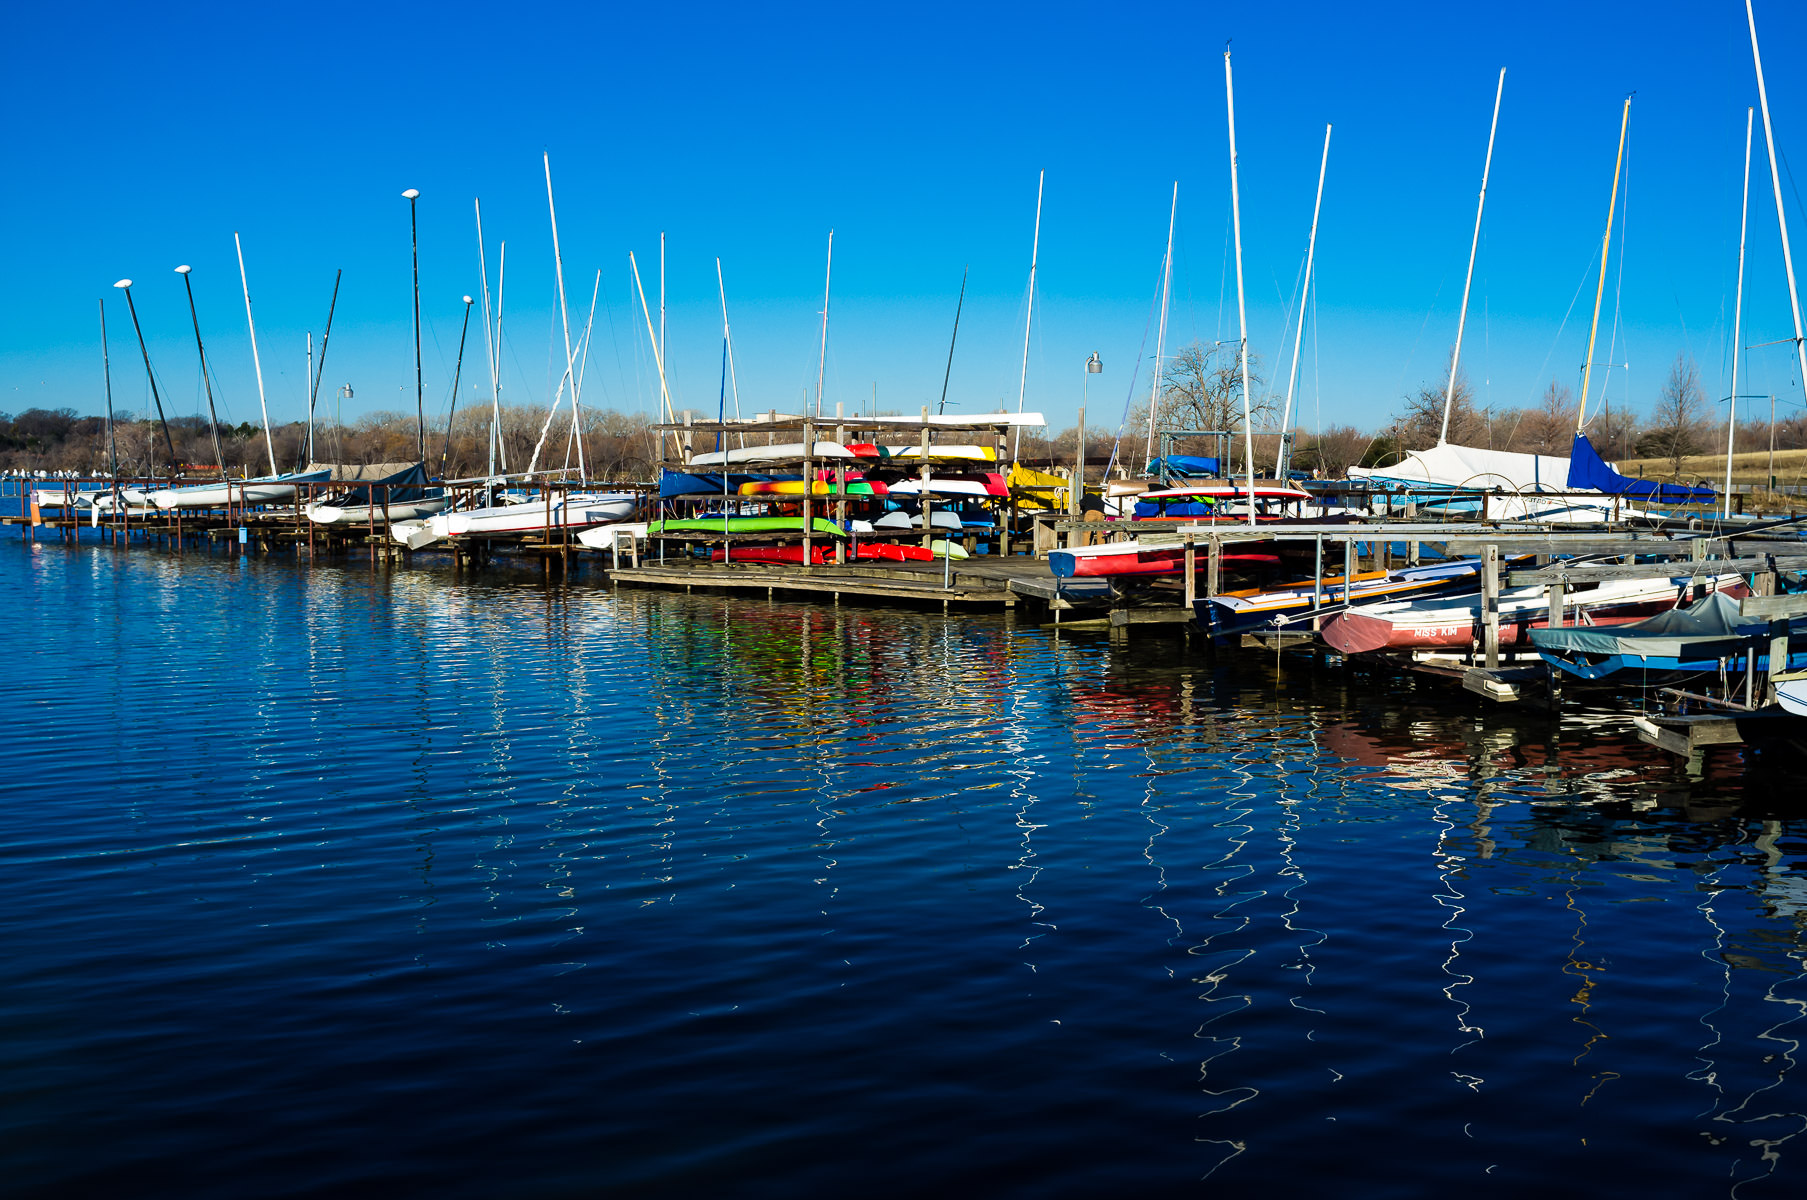 Boats docked and stored at Dallas' White Rock Lake.